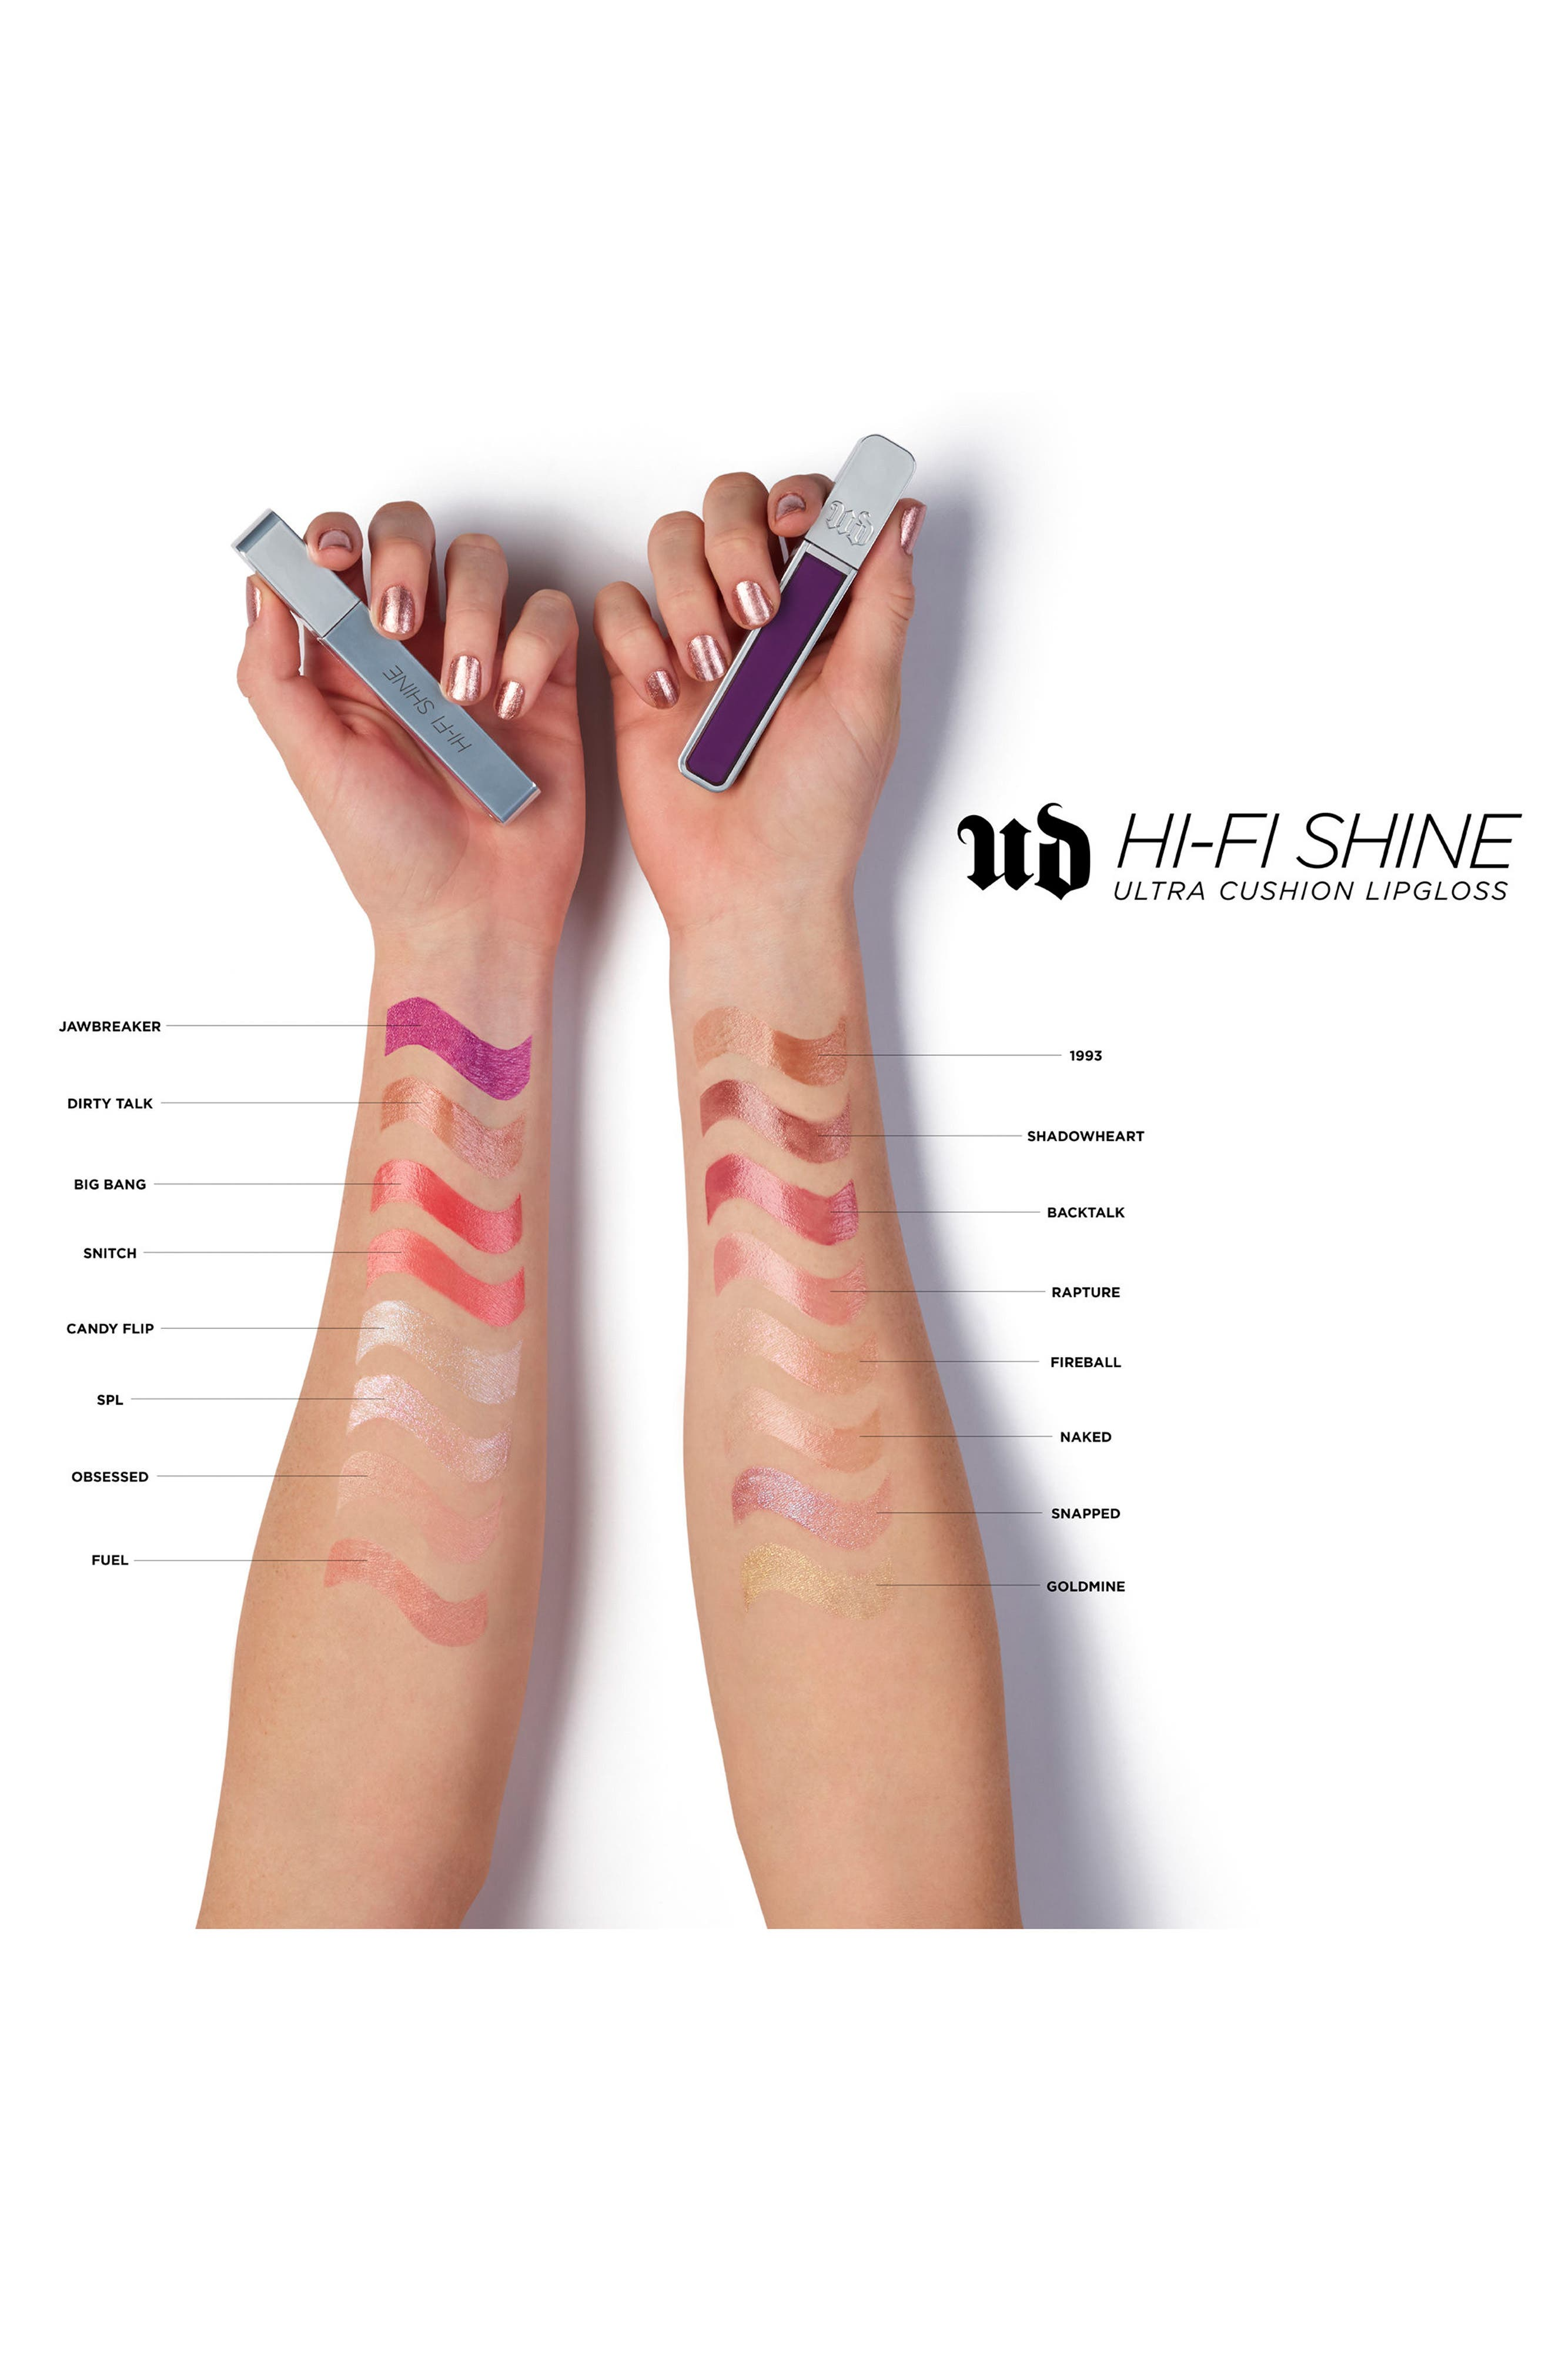 Hi-Fi Shine Ultra Cushion Lipgloss,                             Alternate thumbnail 5, color,                             SNAPPED